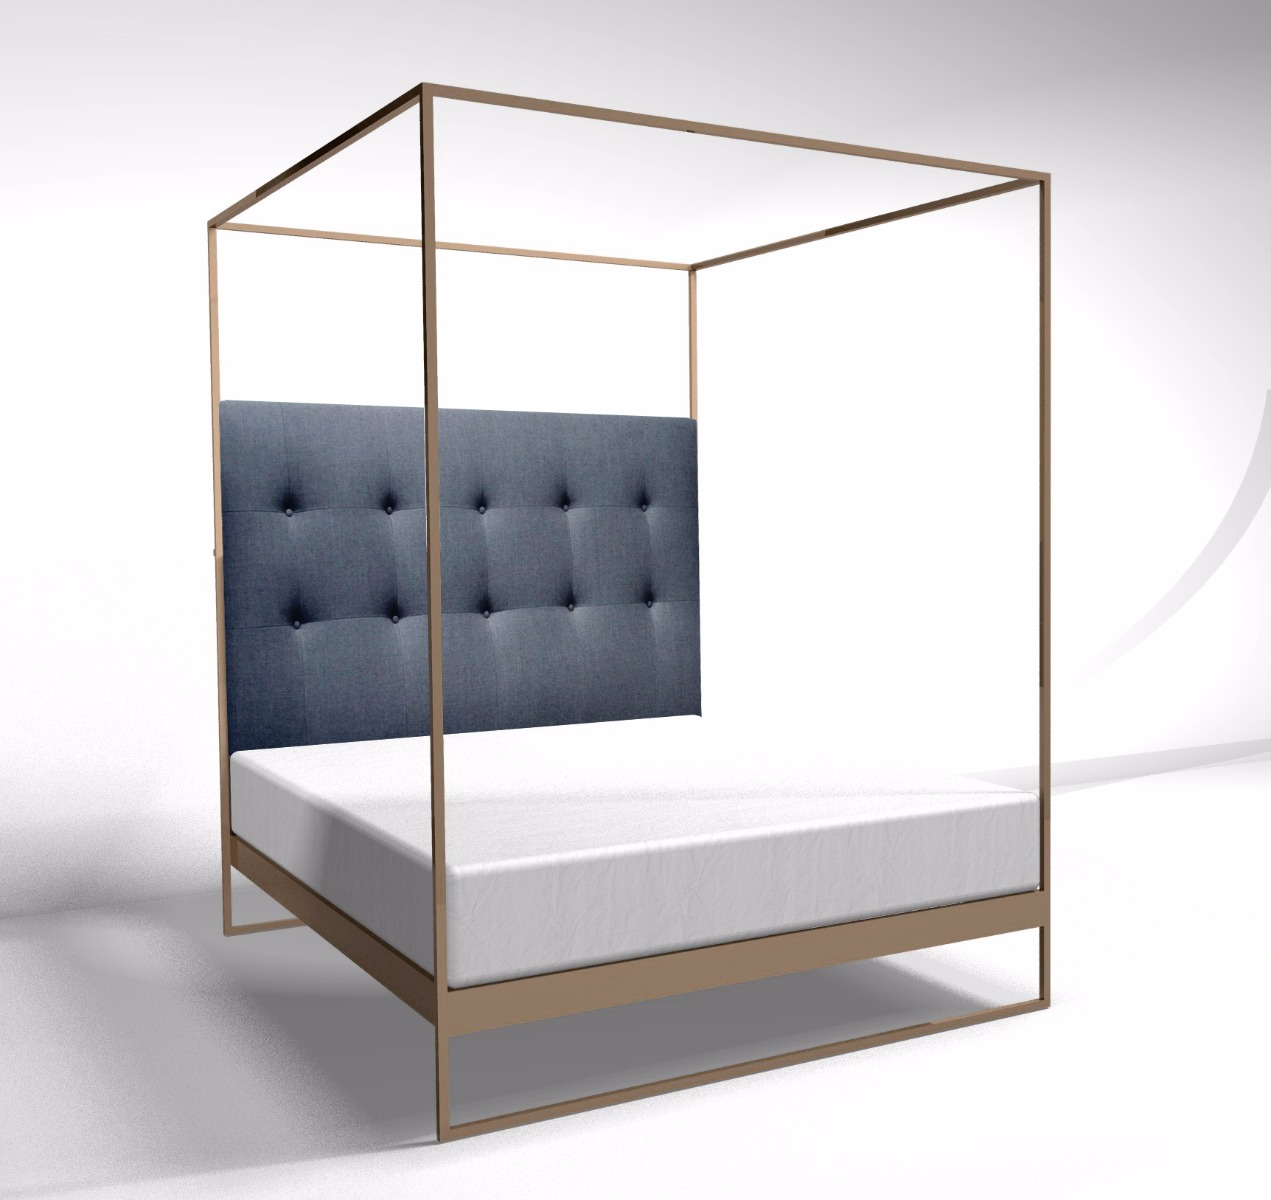 Frederico bed by Gillmore